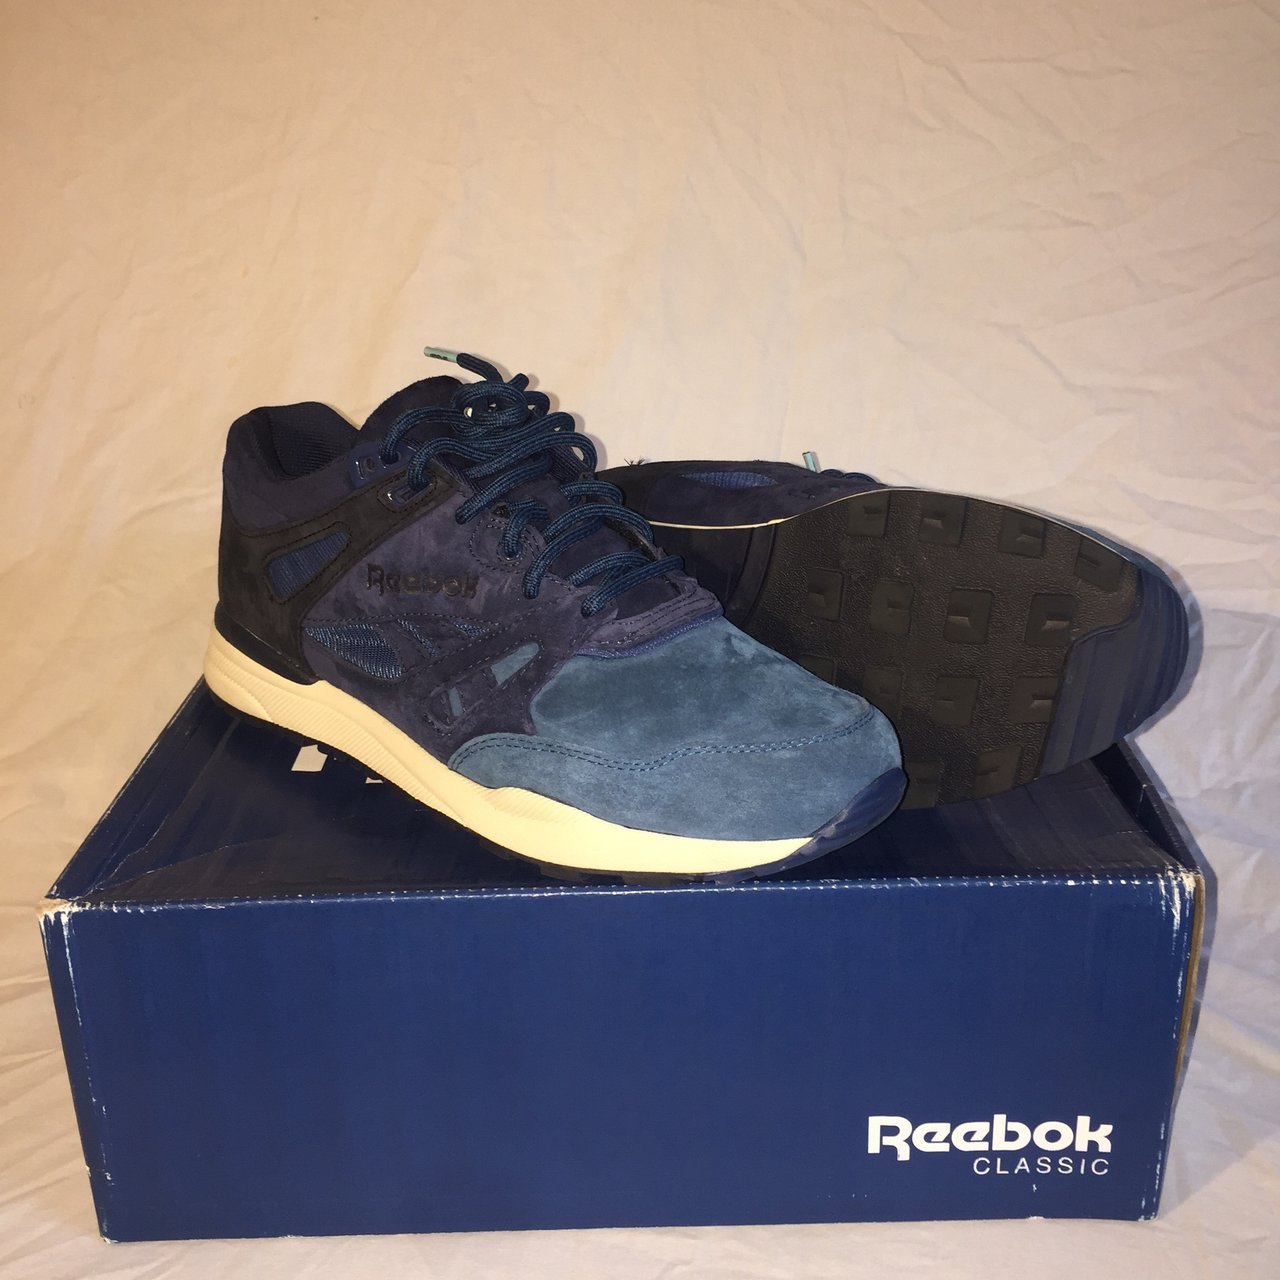 cf79a4e0177b Reebok Ventilator Classics Size 9 Brand new with box 📦 - Depop